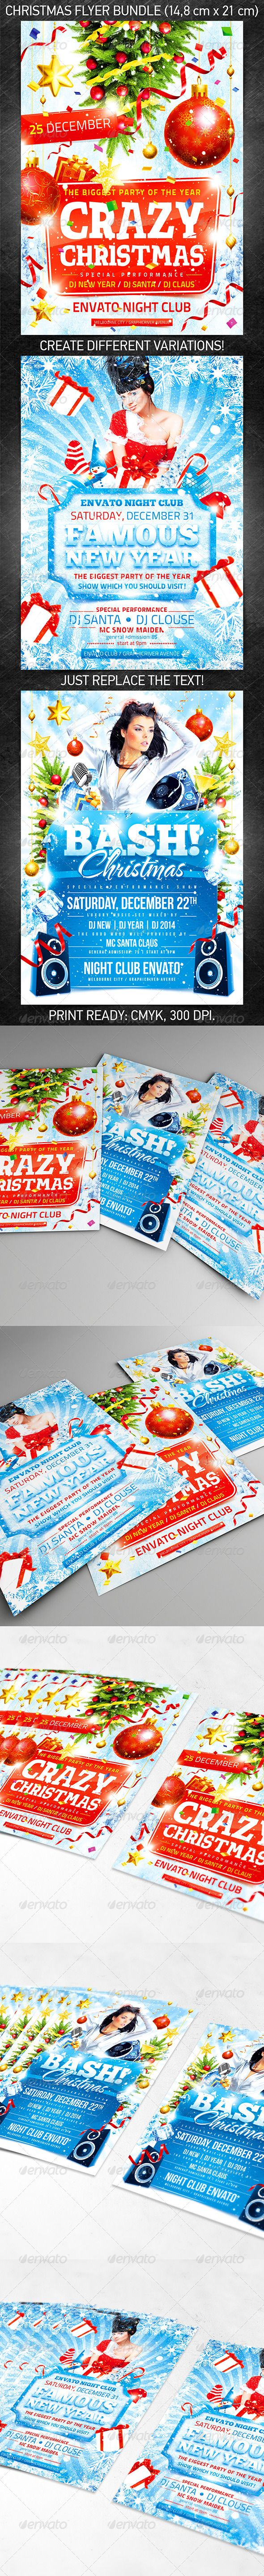 the 22 best cheesy christmas flyer images on pinterest christmas